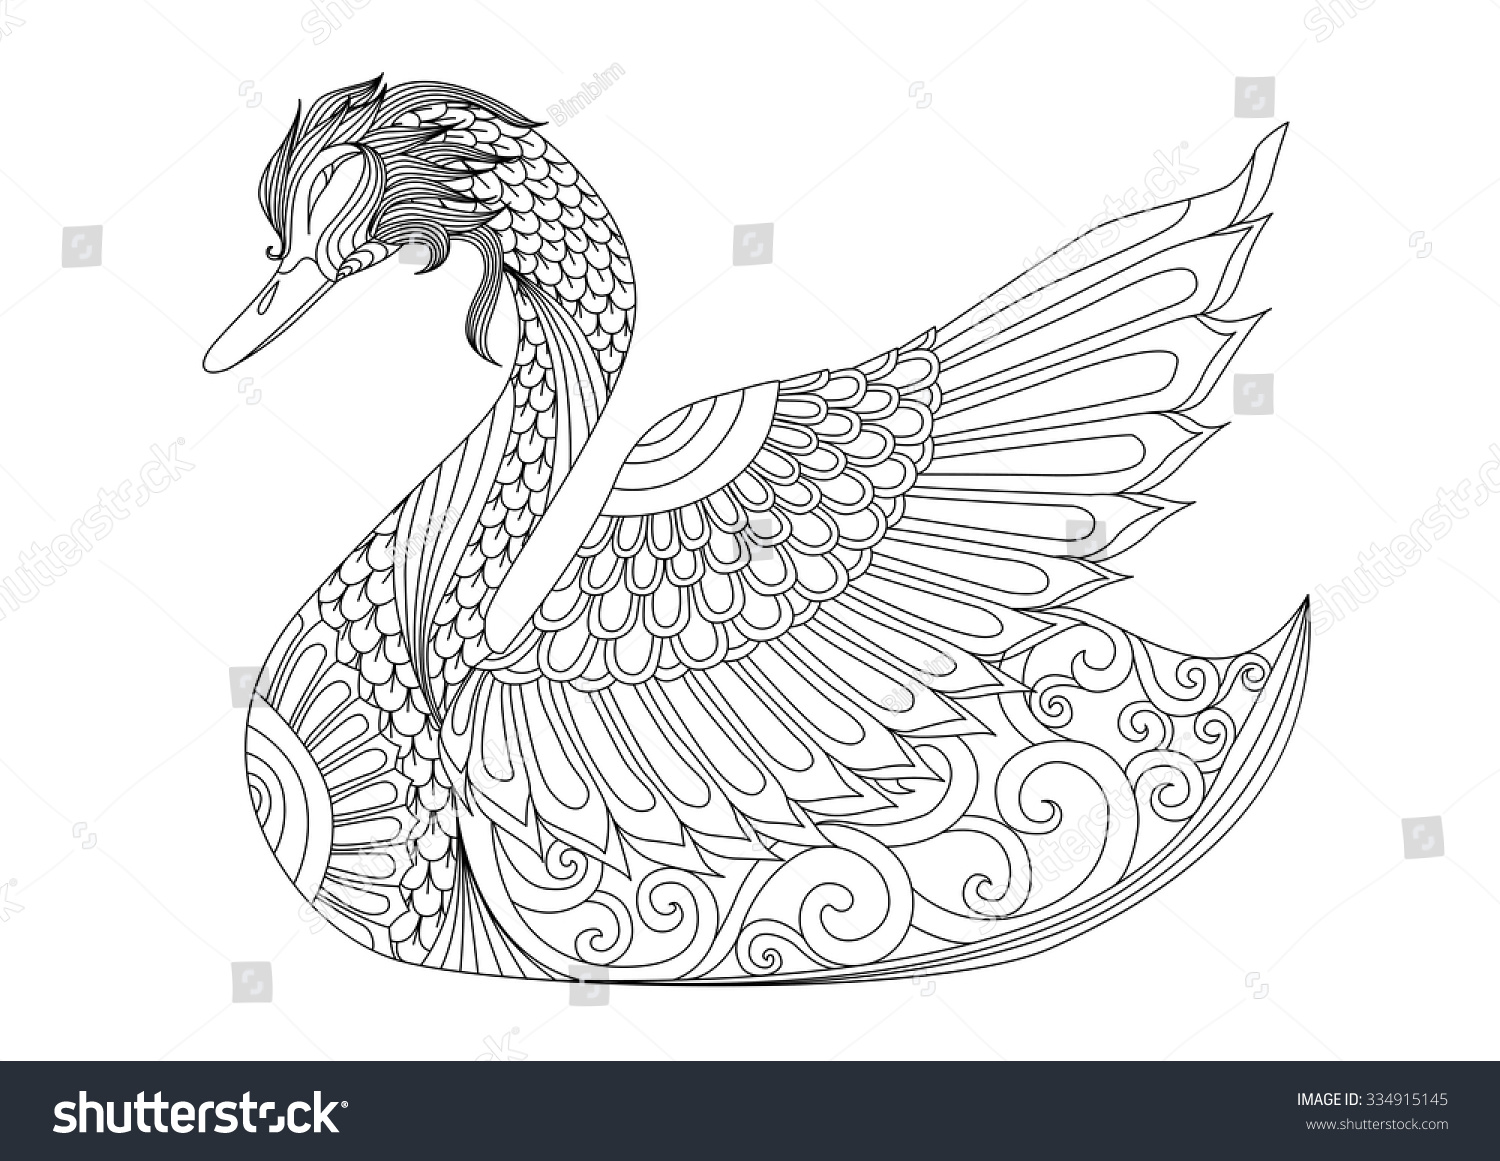 Drawing Zentangle Swan Coloring Page Shirt Stock Vector 334915145 ...